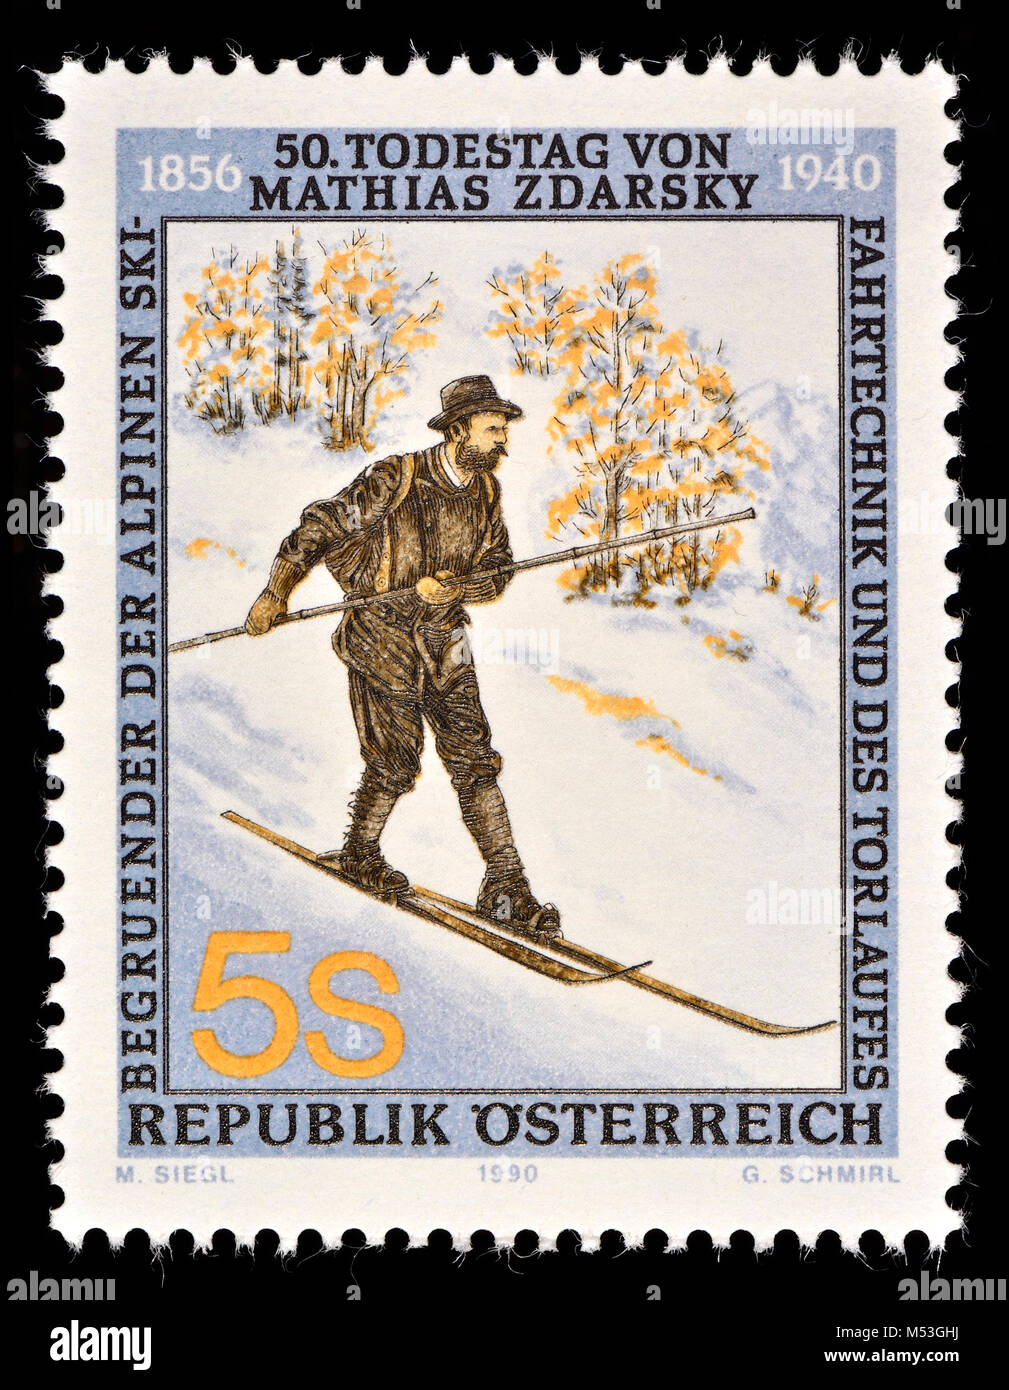 Austrian postage stamp (1990) : Mathias Zdarsky (1856-1940) early ski pioneer and considered one of the founders - Stock Image